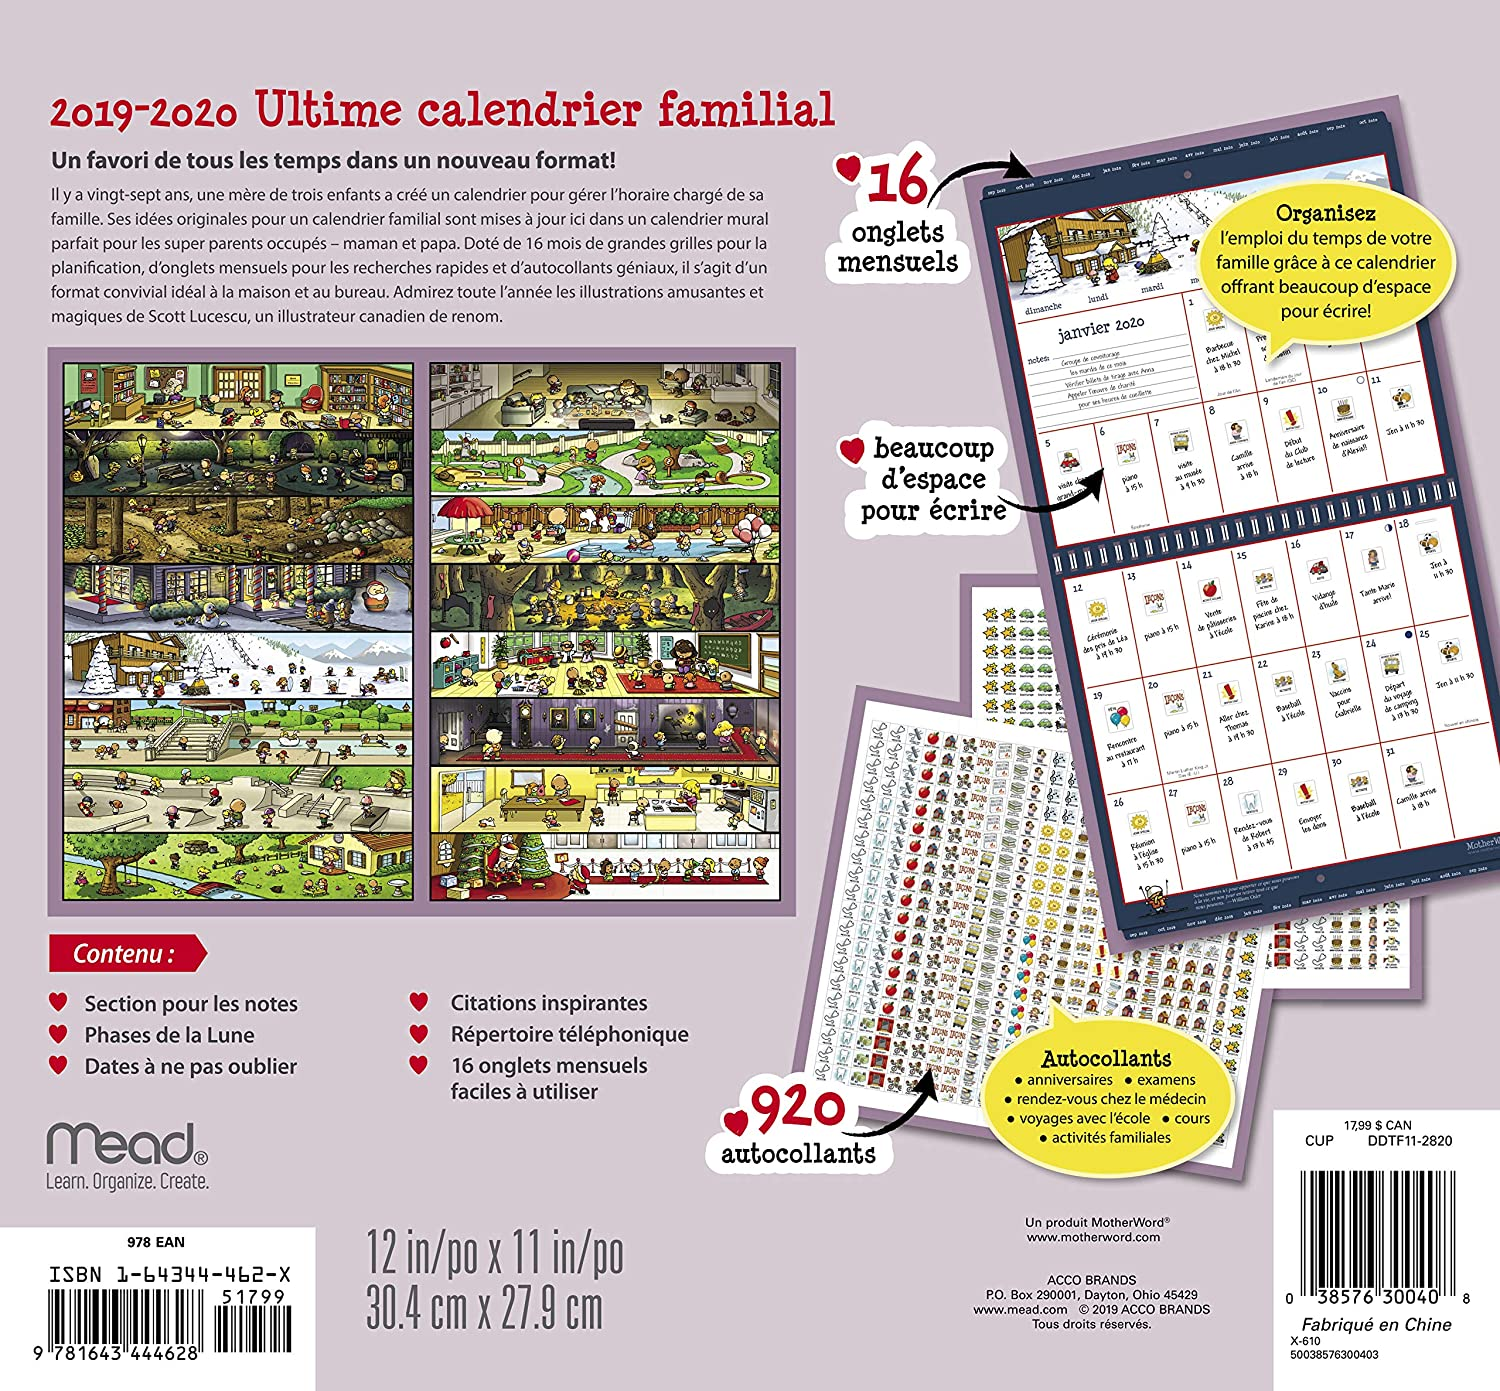 Calendrier 1919.Motherword Ultimate Family Wall Calendar 16 Month Sept 2019 Dec 2020 French Small Tabbed Version 12 X 11 Inches Ddtf11 2820